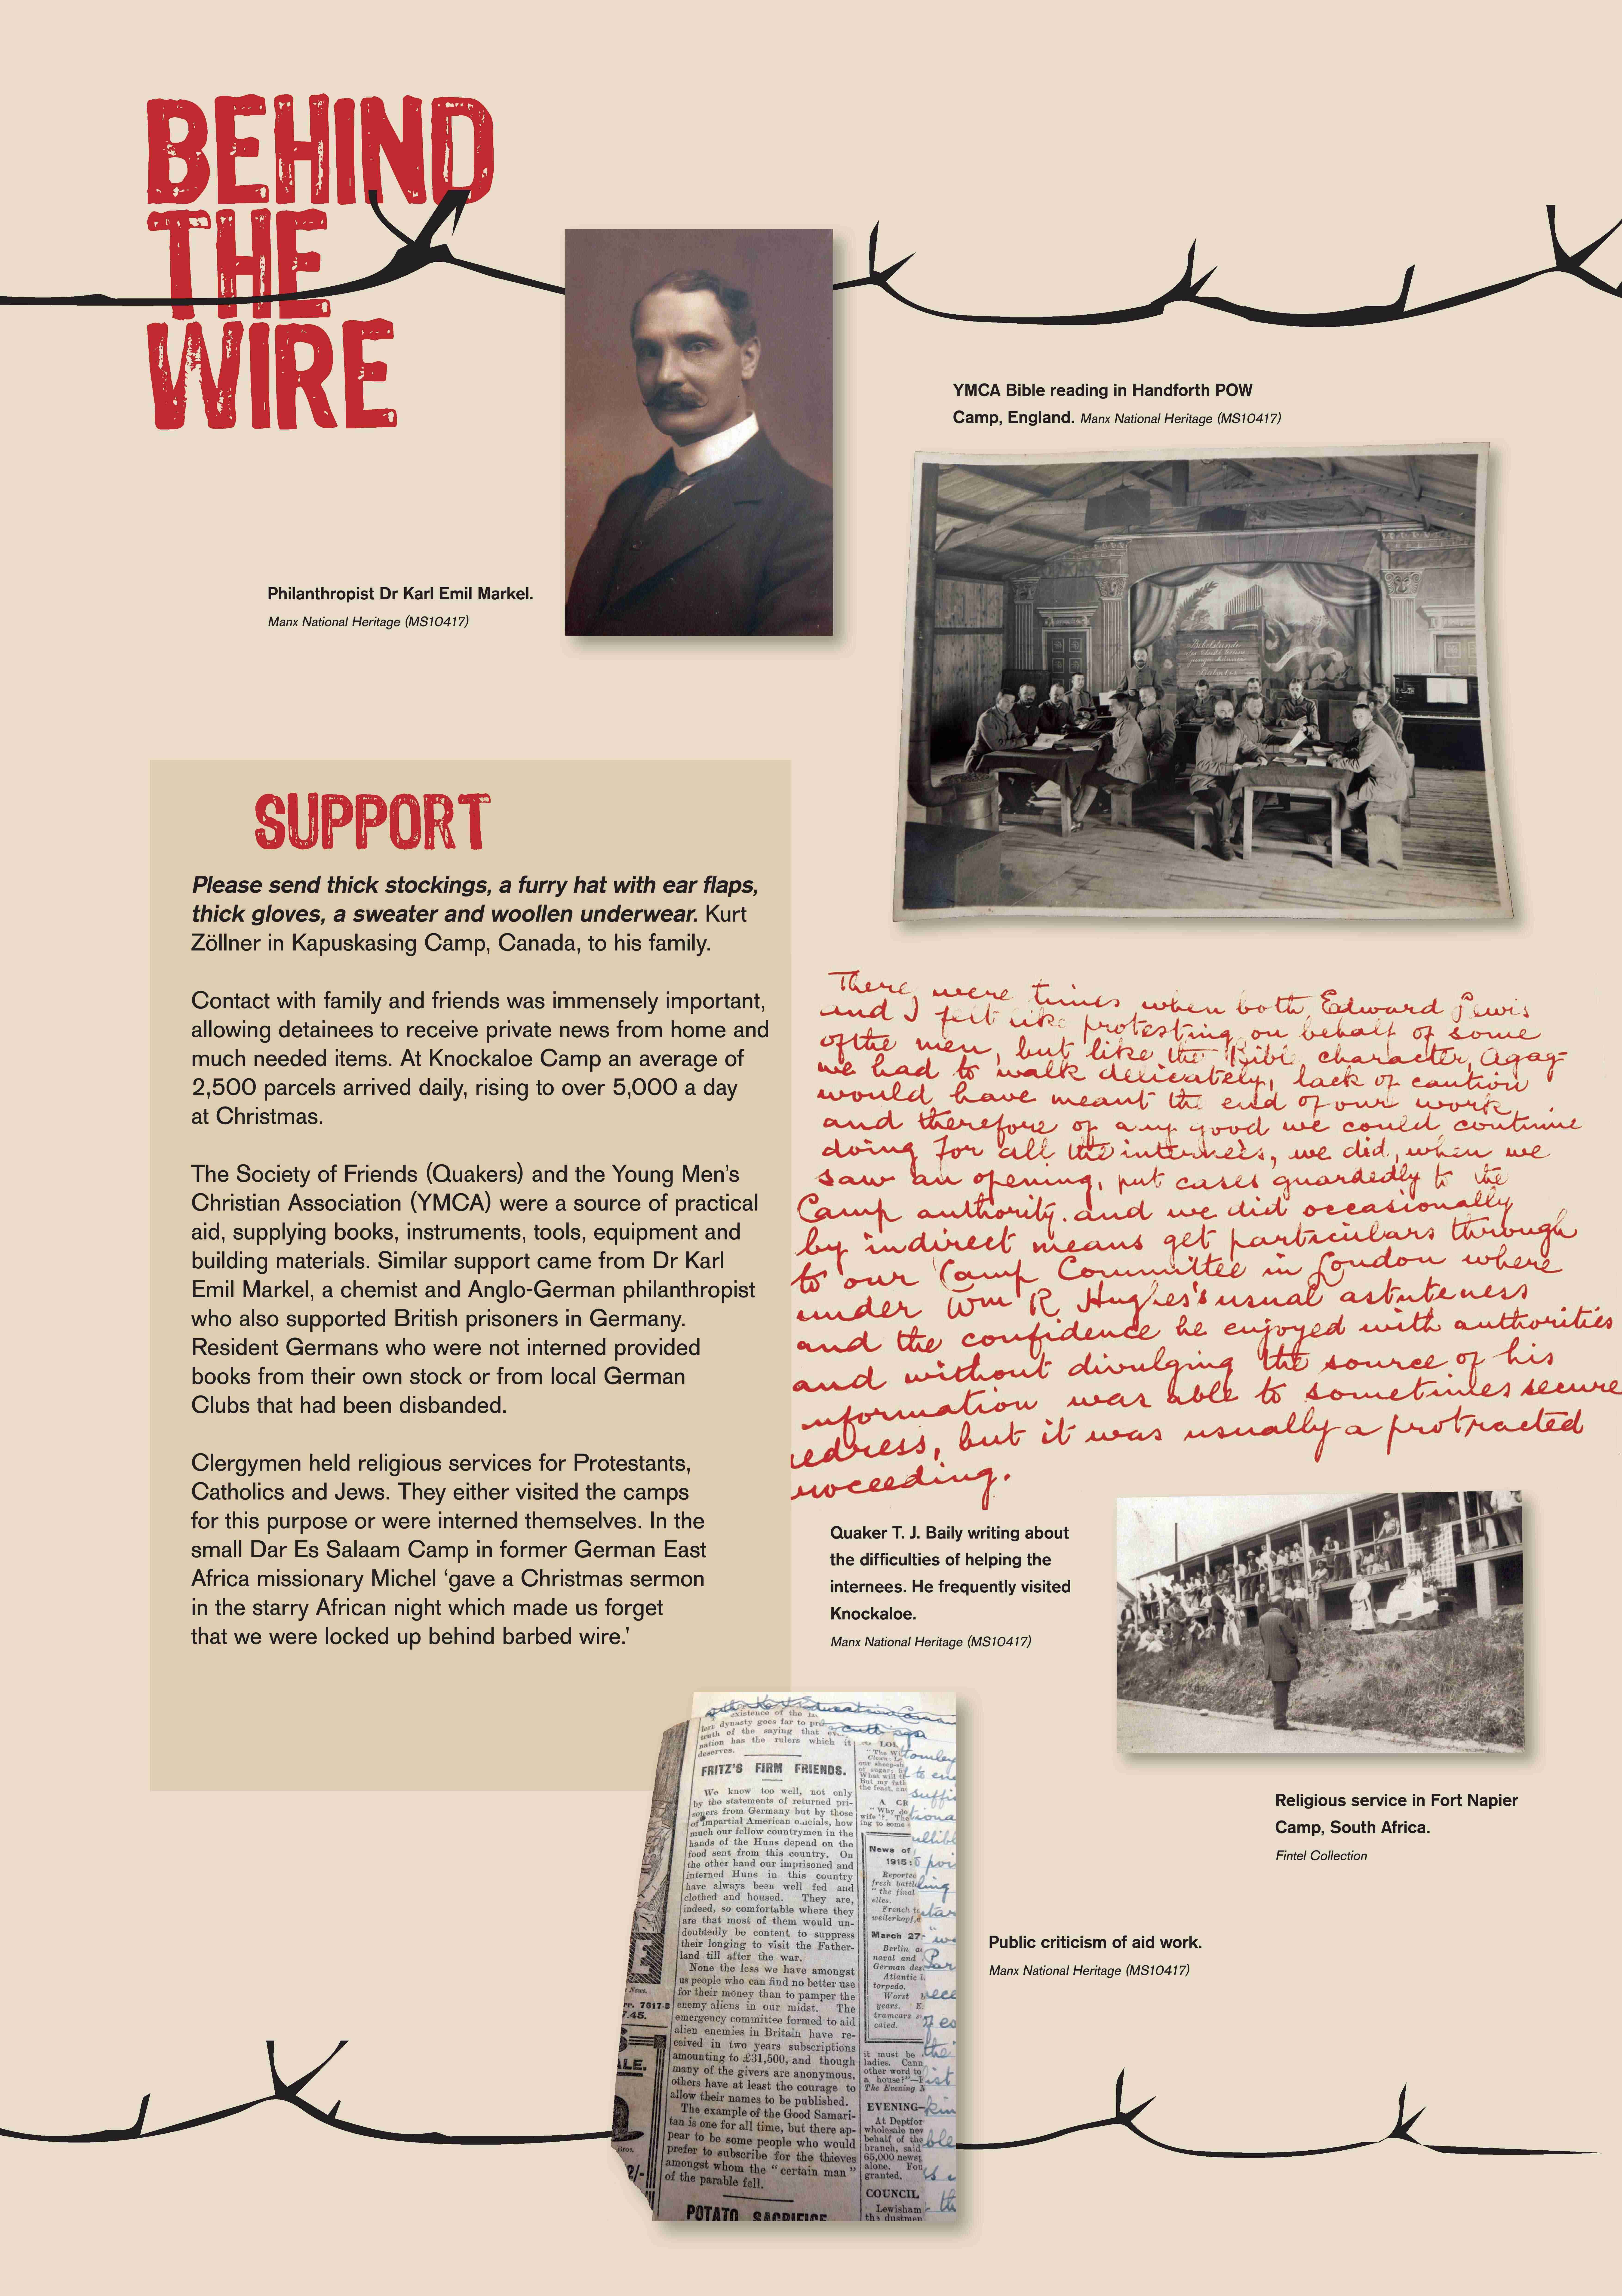 15-Behind the Wire-A1-Exhibition-Support_DIGITAL VERSION-page-001-min-compressed